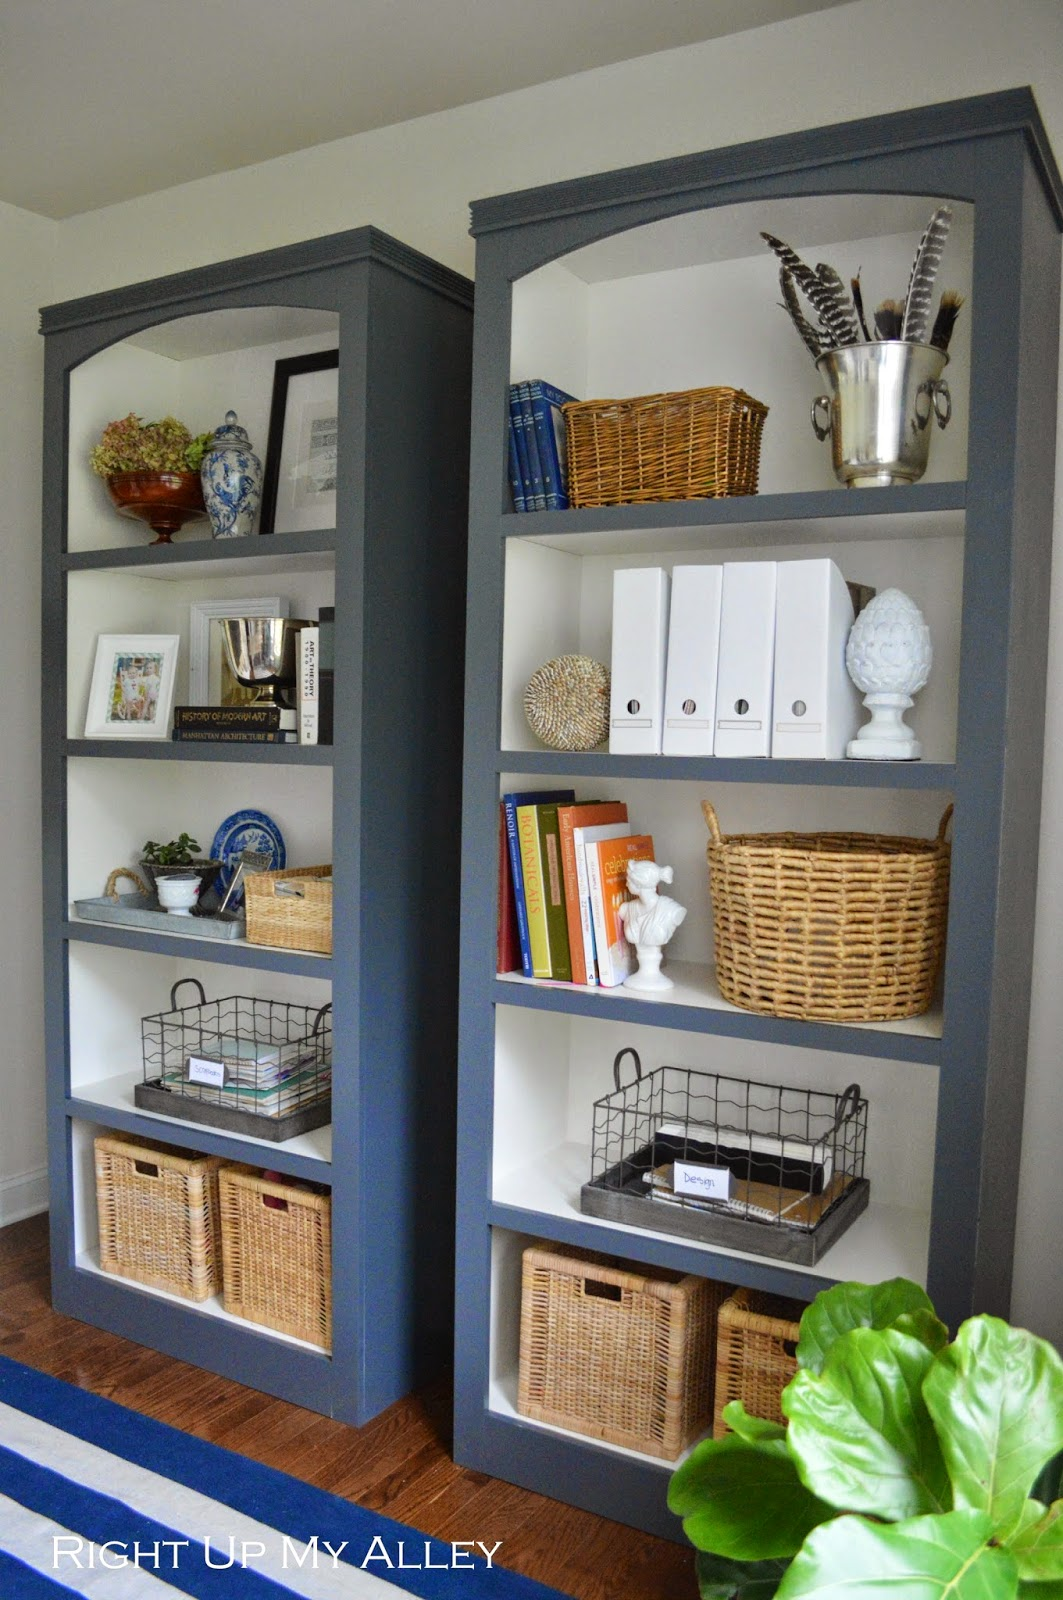 office book shelves. I\u0027m So Excited To Reveal Today Our Home Office Makeover And Bookshelves We Made From Plywood. I Shared A Sneak Peak Created Design Board For My Book Shelves L